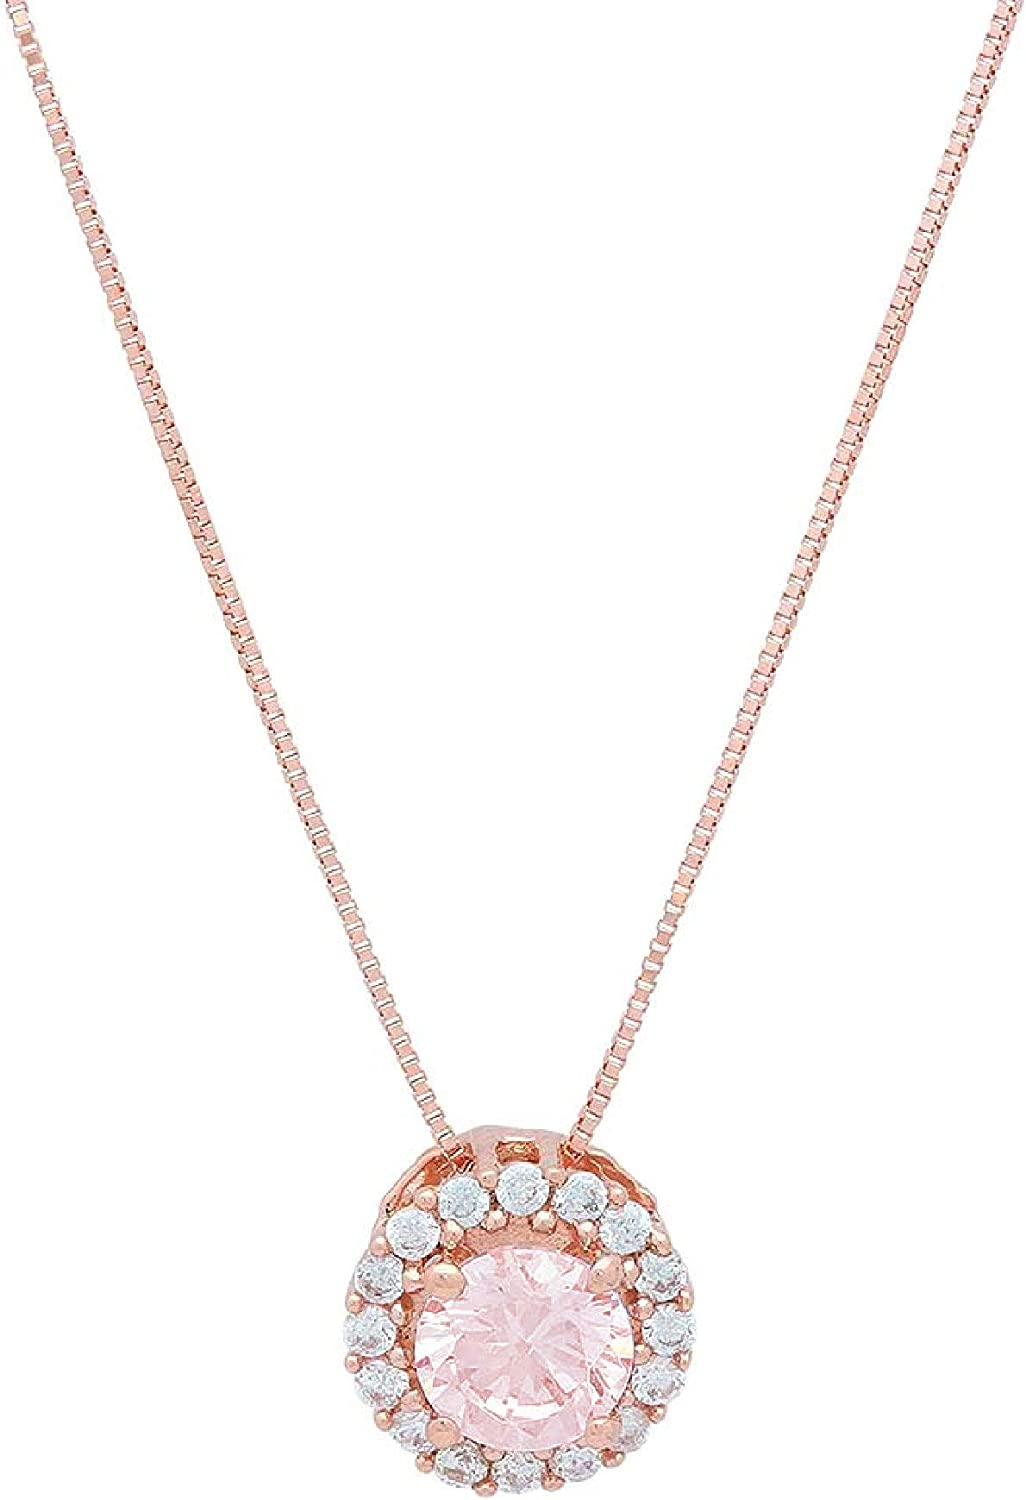 Clara Pucci 1.4 ct Brilliant Round Cut Pave Halo Stunning Genuine Flawless Pink Simulated Diamond Gemstone Solitaire Pendant Necklace With 16